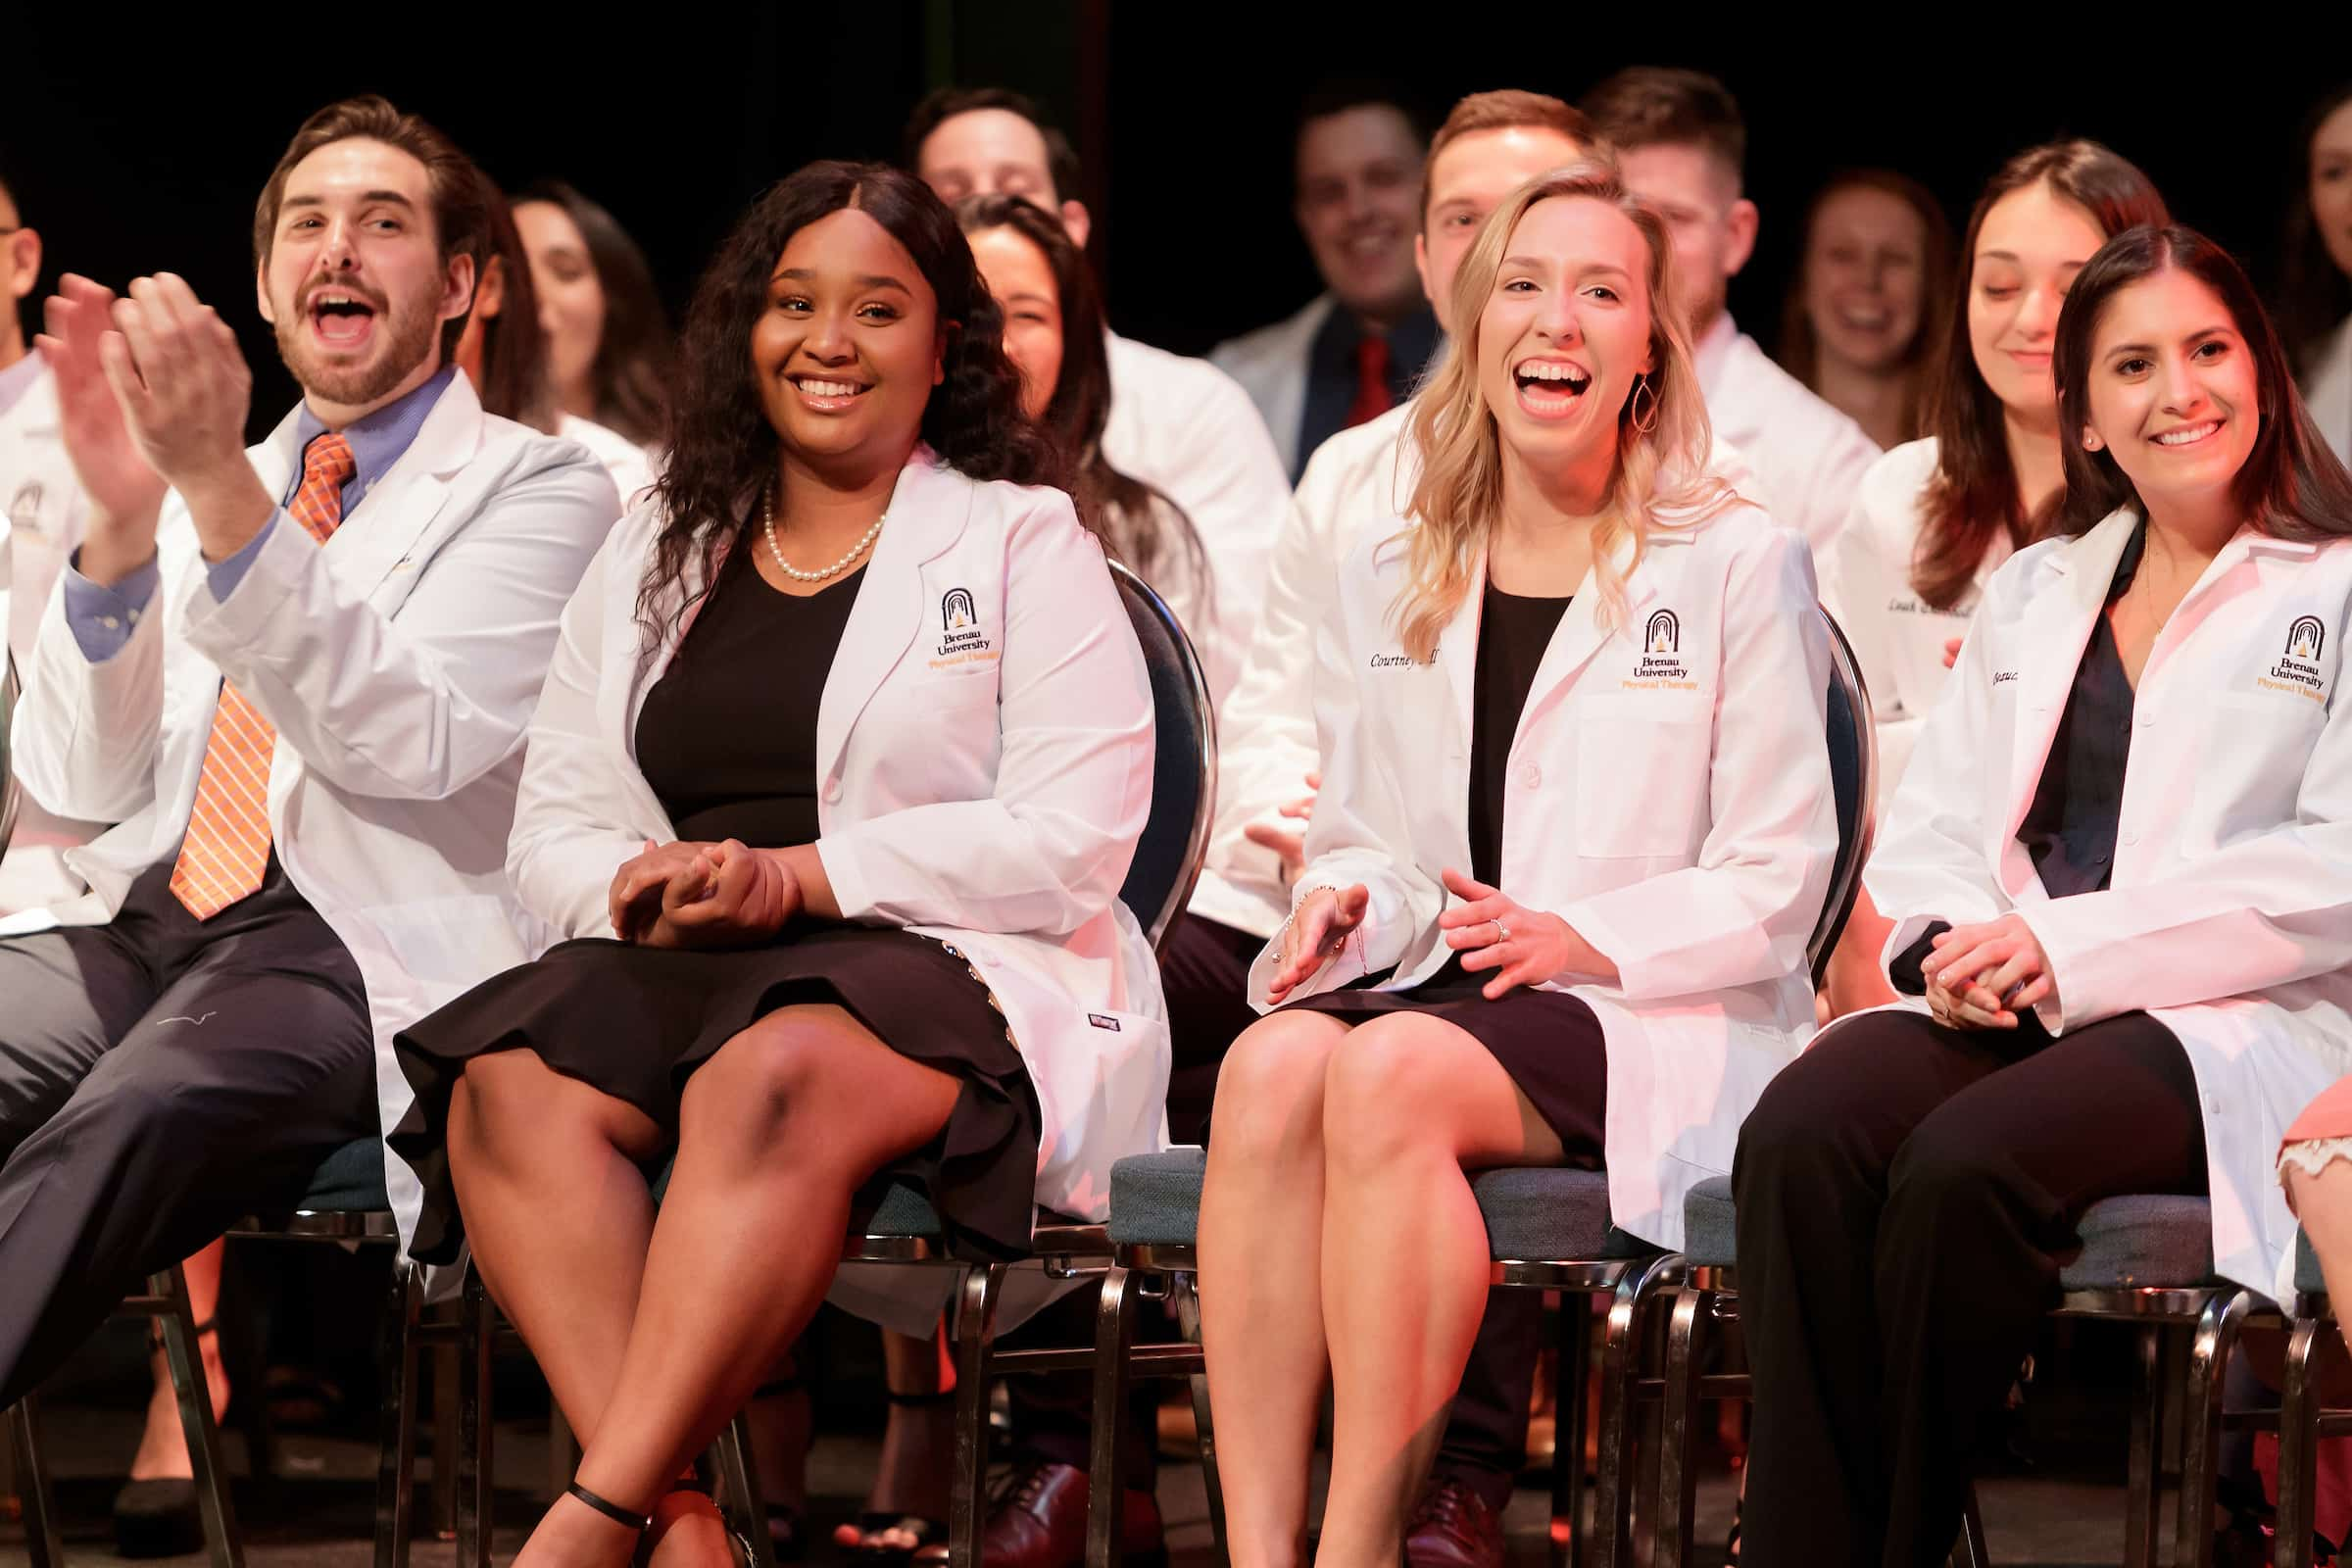 First-year physical therapy students William Byrd, Hannah Brunson, Courtney Bell and Kylie Beauchamp react during the White Coat Ceremony held by the Department of Physical Therapy at Brenau University on Feb. 15. (AJ Reynolds/Brenau University)